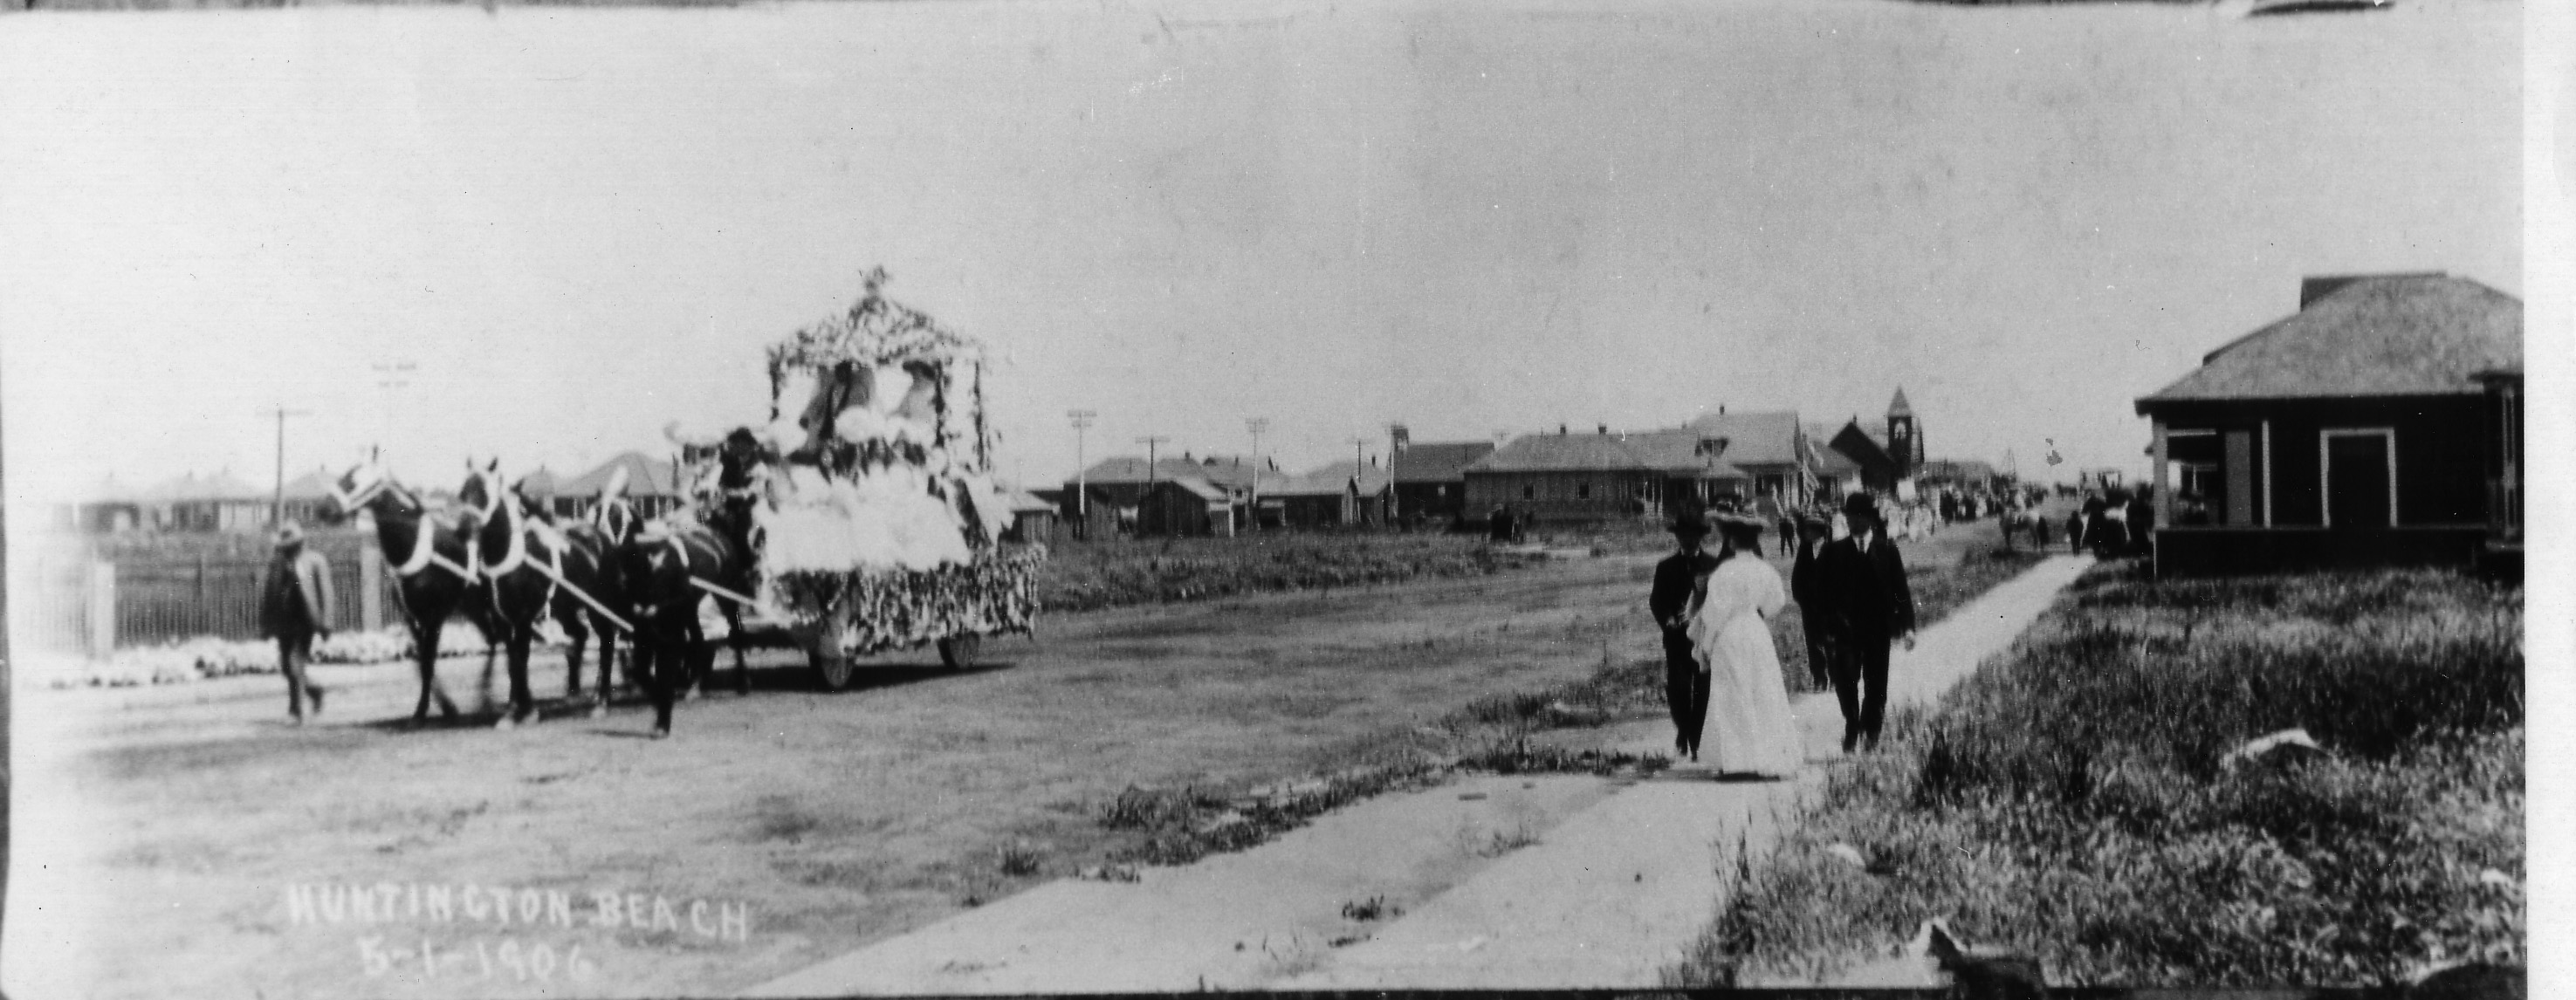 Huntington Beach 4th of July Parade circa 1906